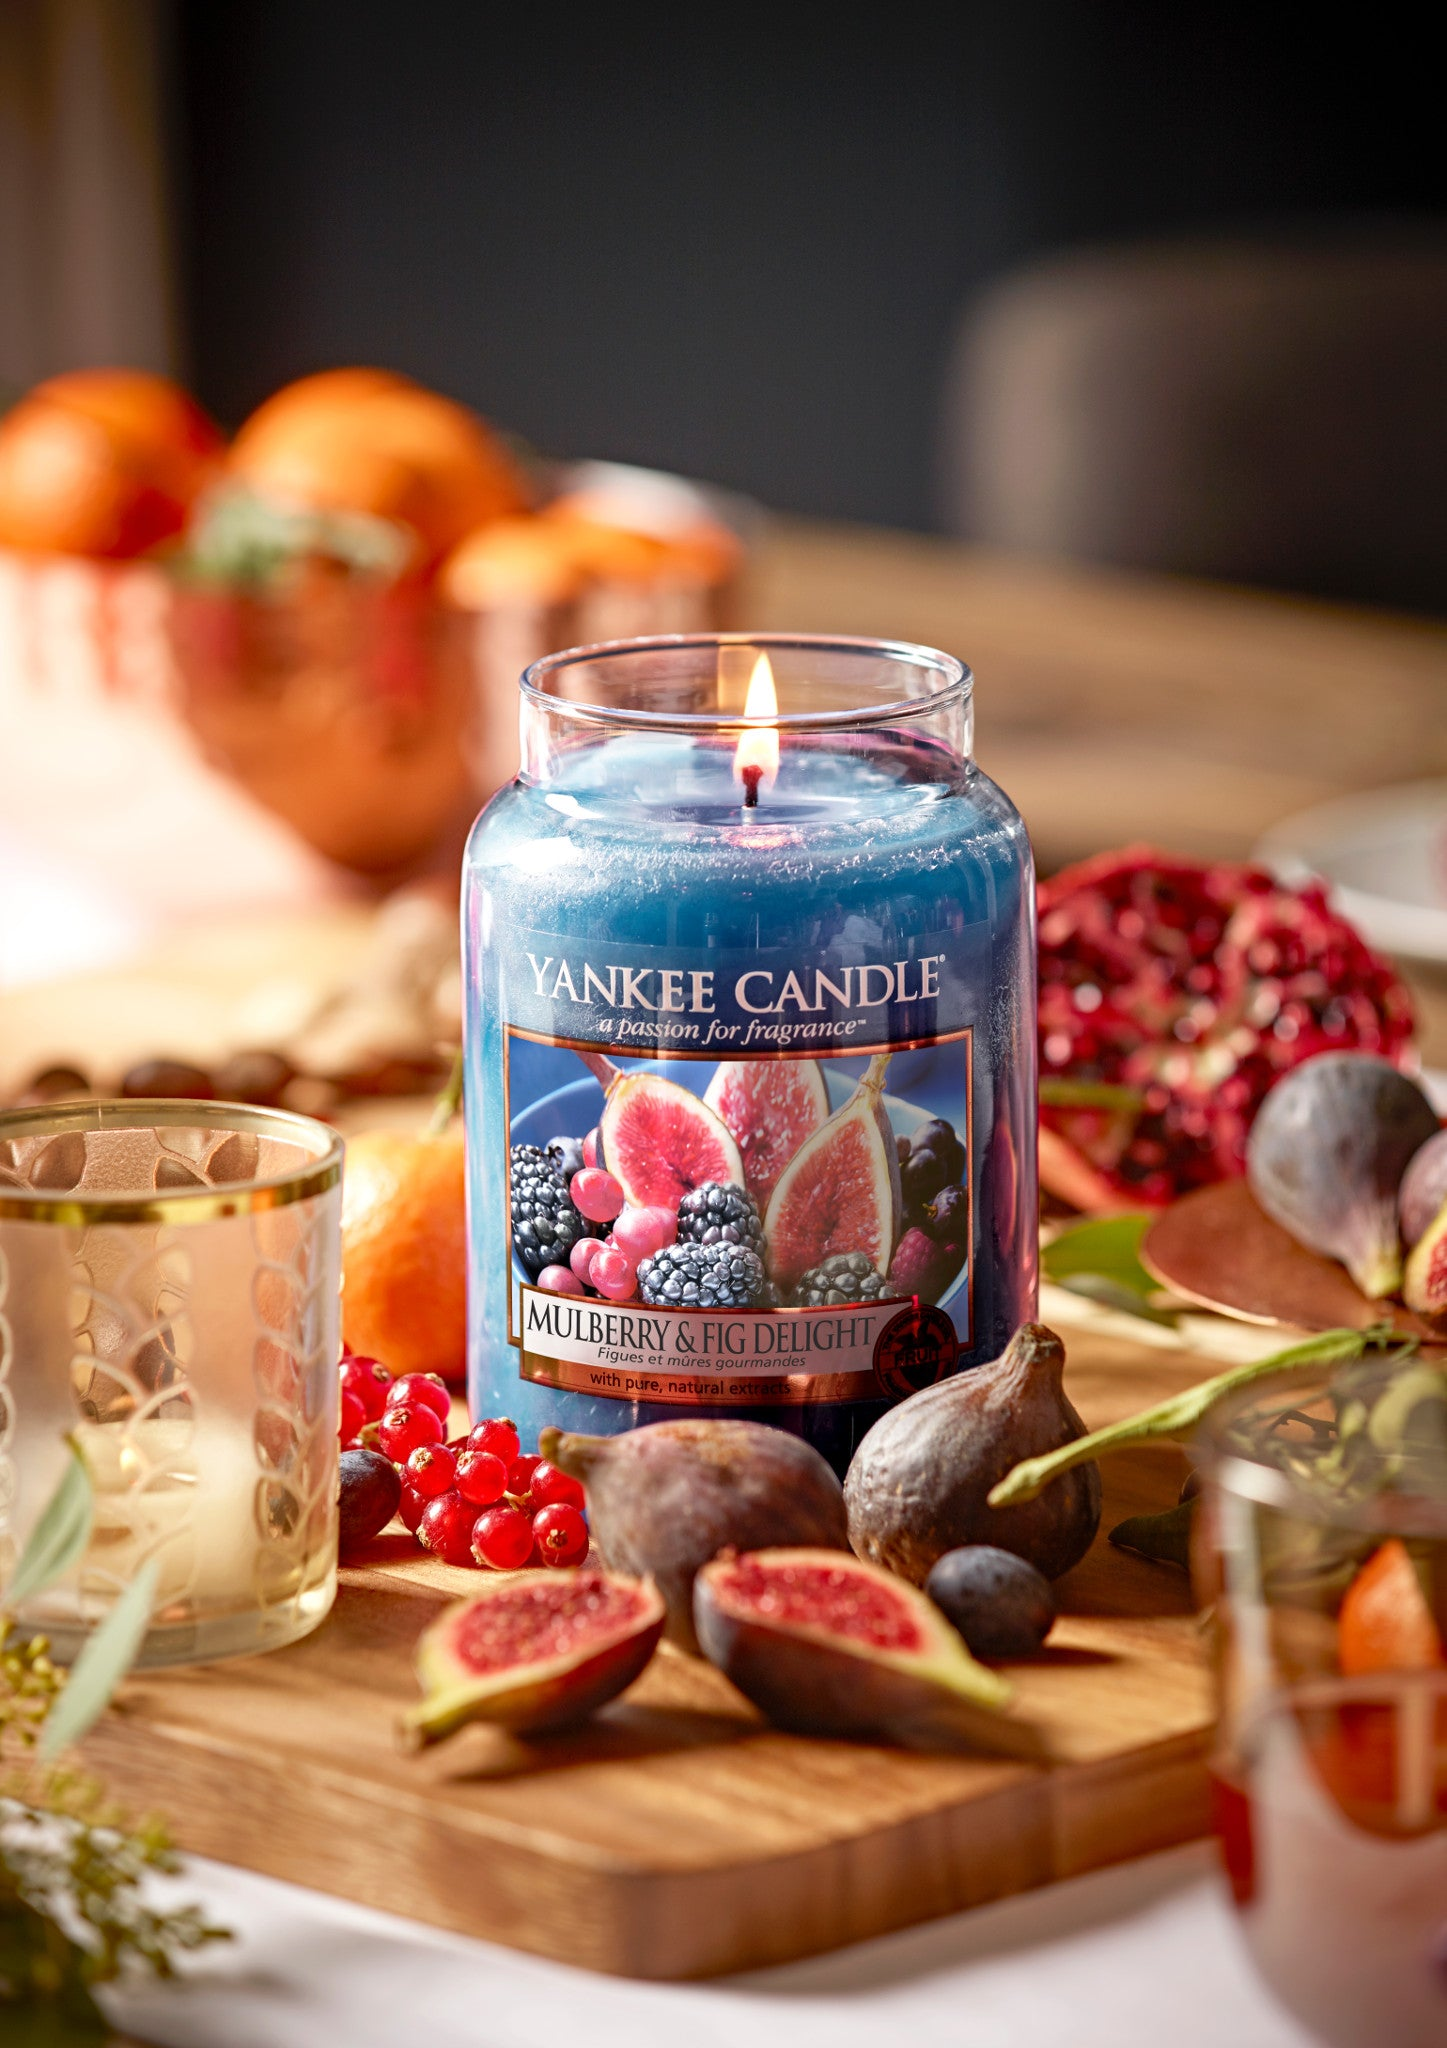 MULBERRY & FIG DELIGHT -Yankee Candle- Tart